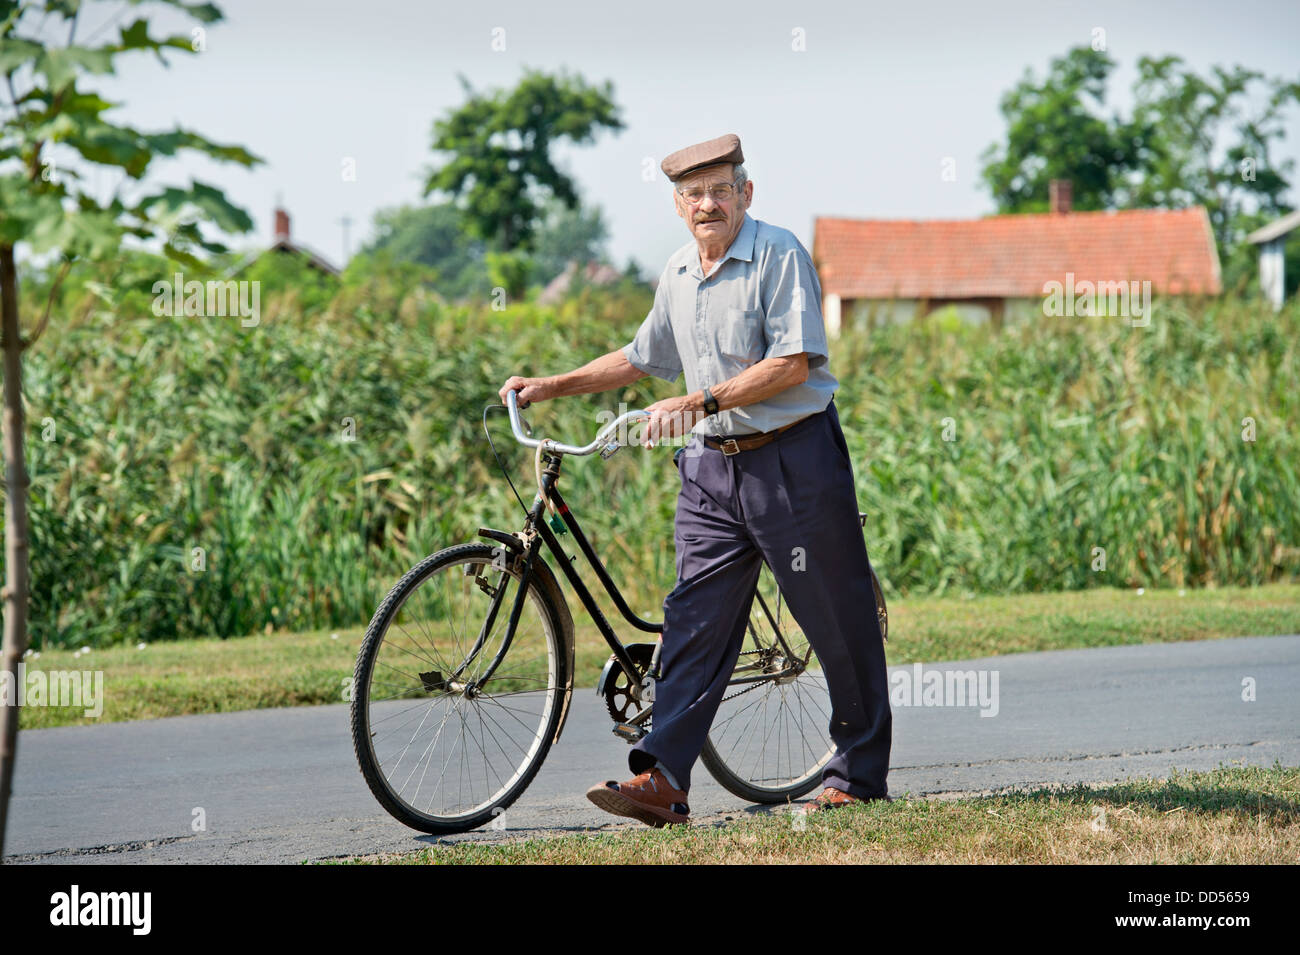 A Hungarian man in the town of Devavanya, Hungary (20 Aug 2013) Stock Photo